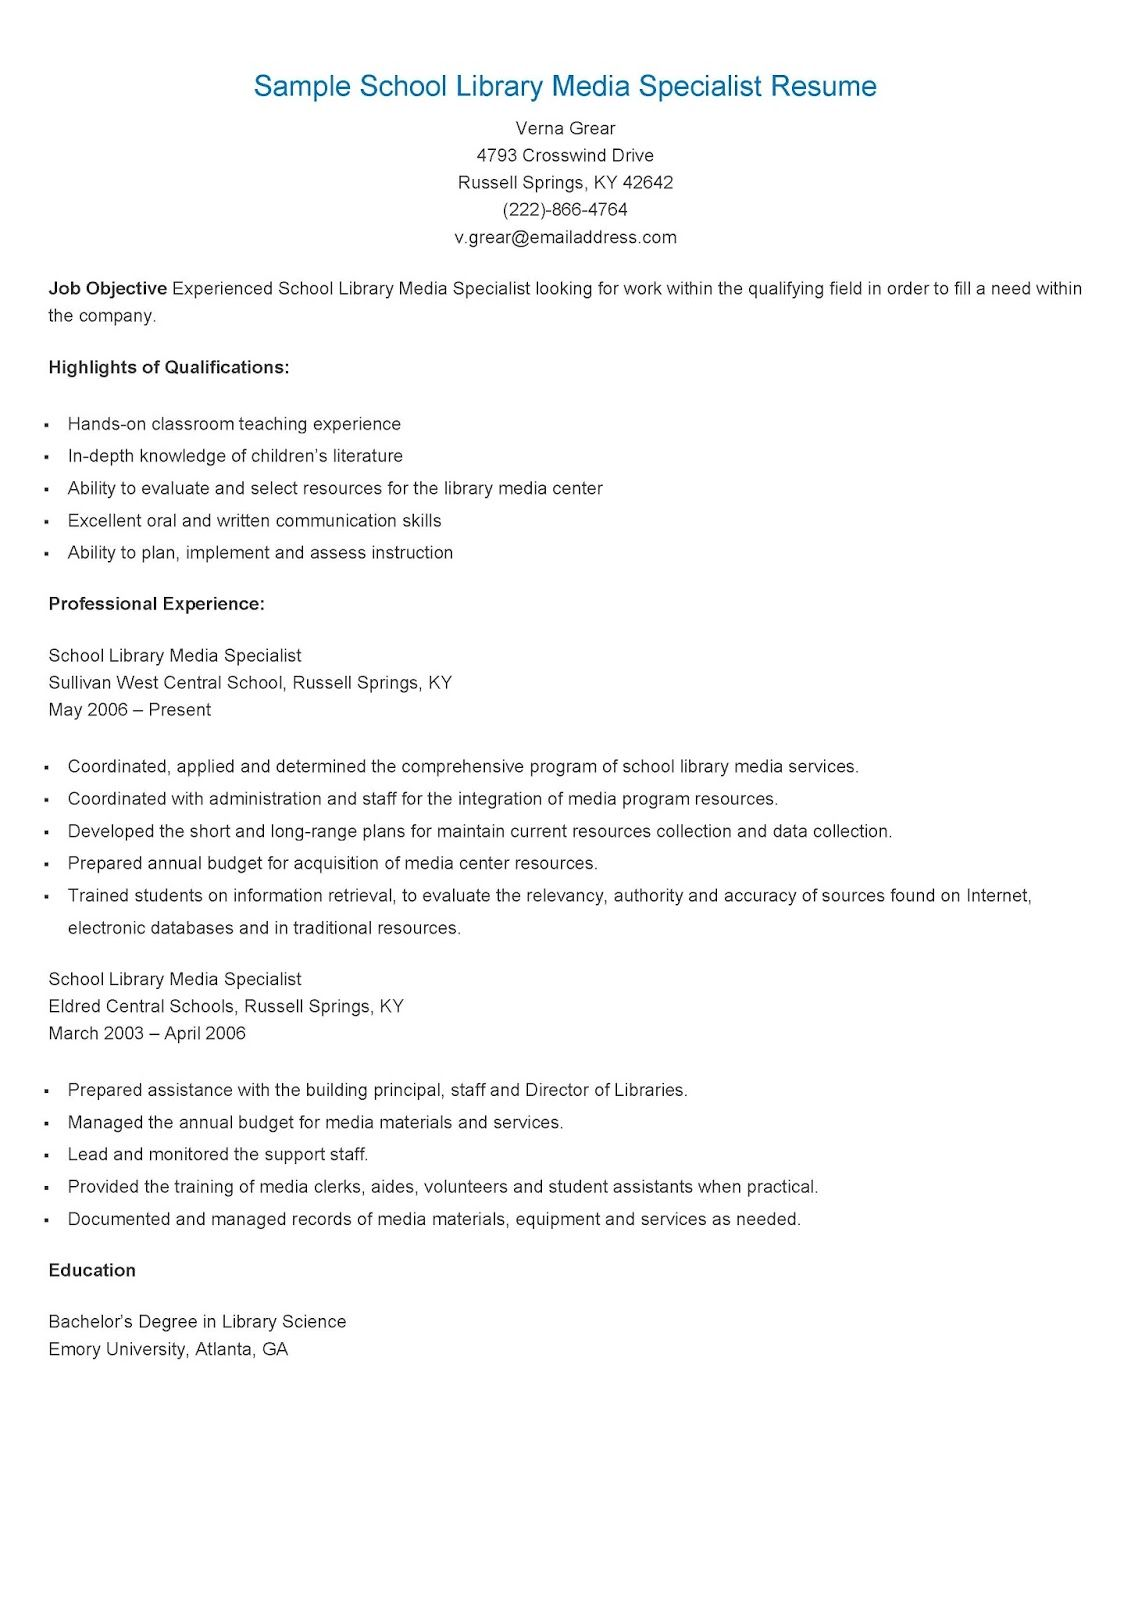 explore school libraries resume and more sample school library. Resume Example. Resume CV Cover Letter